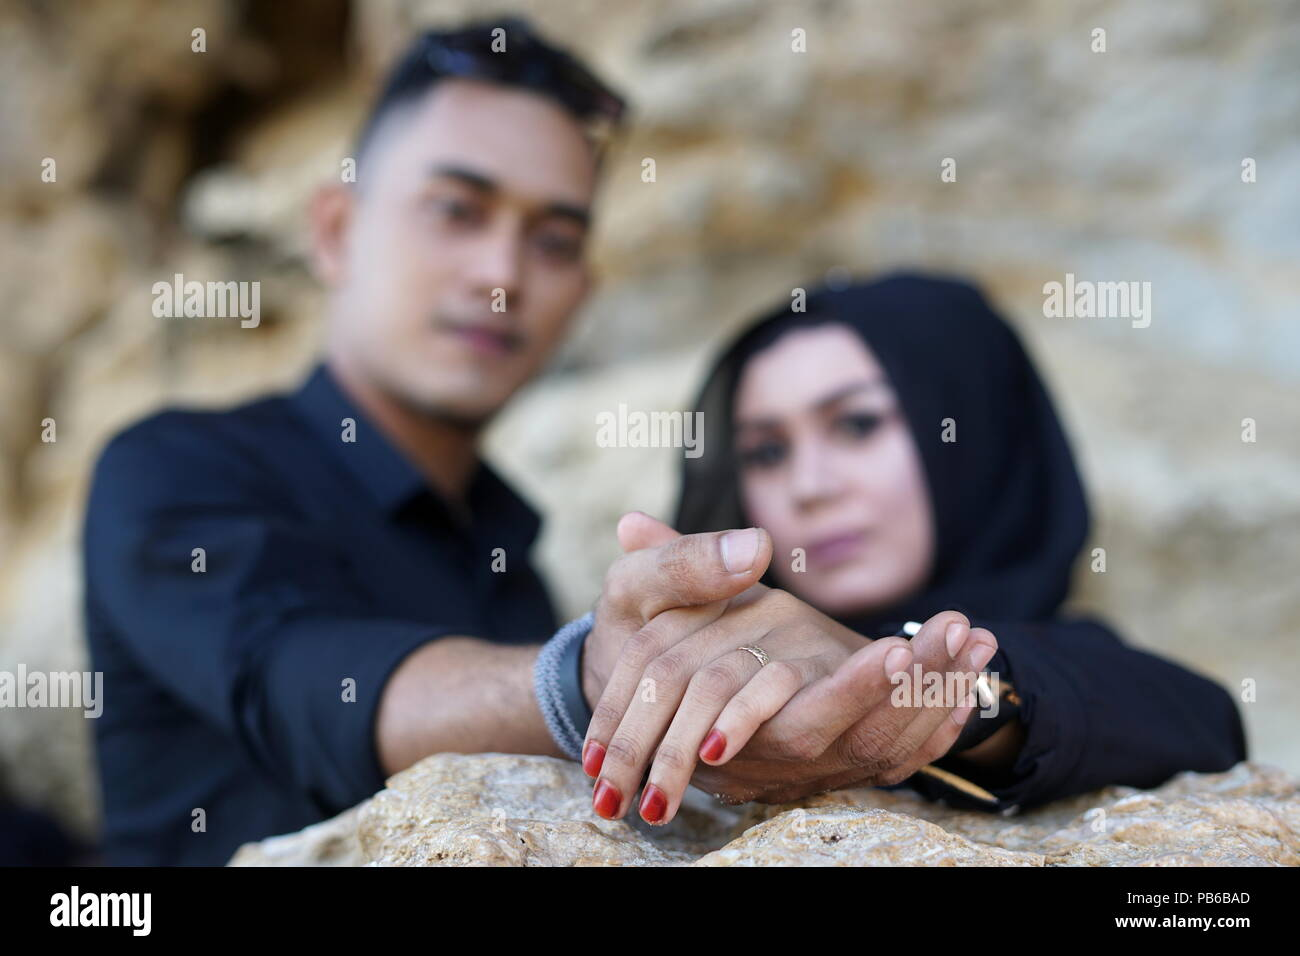 Muslim Couple holding hand in the mountains Rock with Black Dress - Stock Image